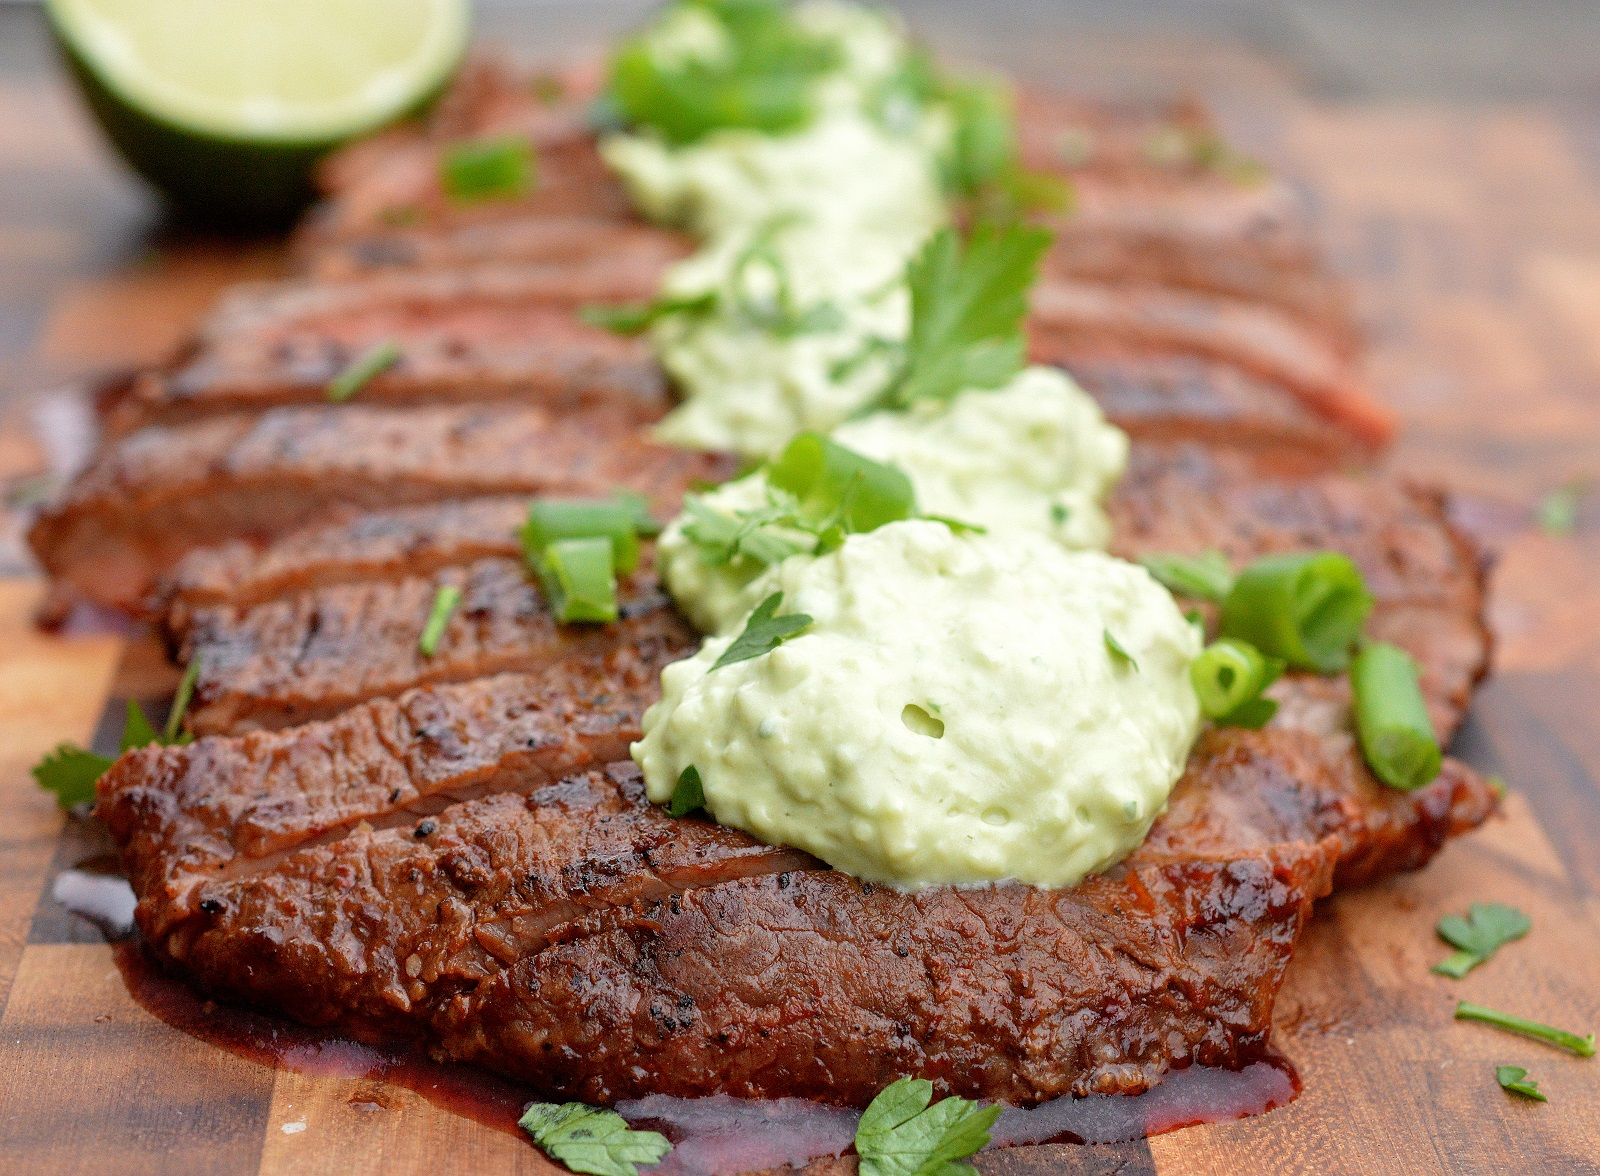 Chipotle Grilled Steak with Avocado Cream A delicious way to enjoy a steak!